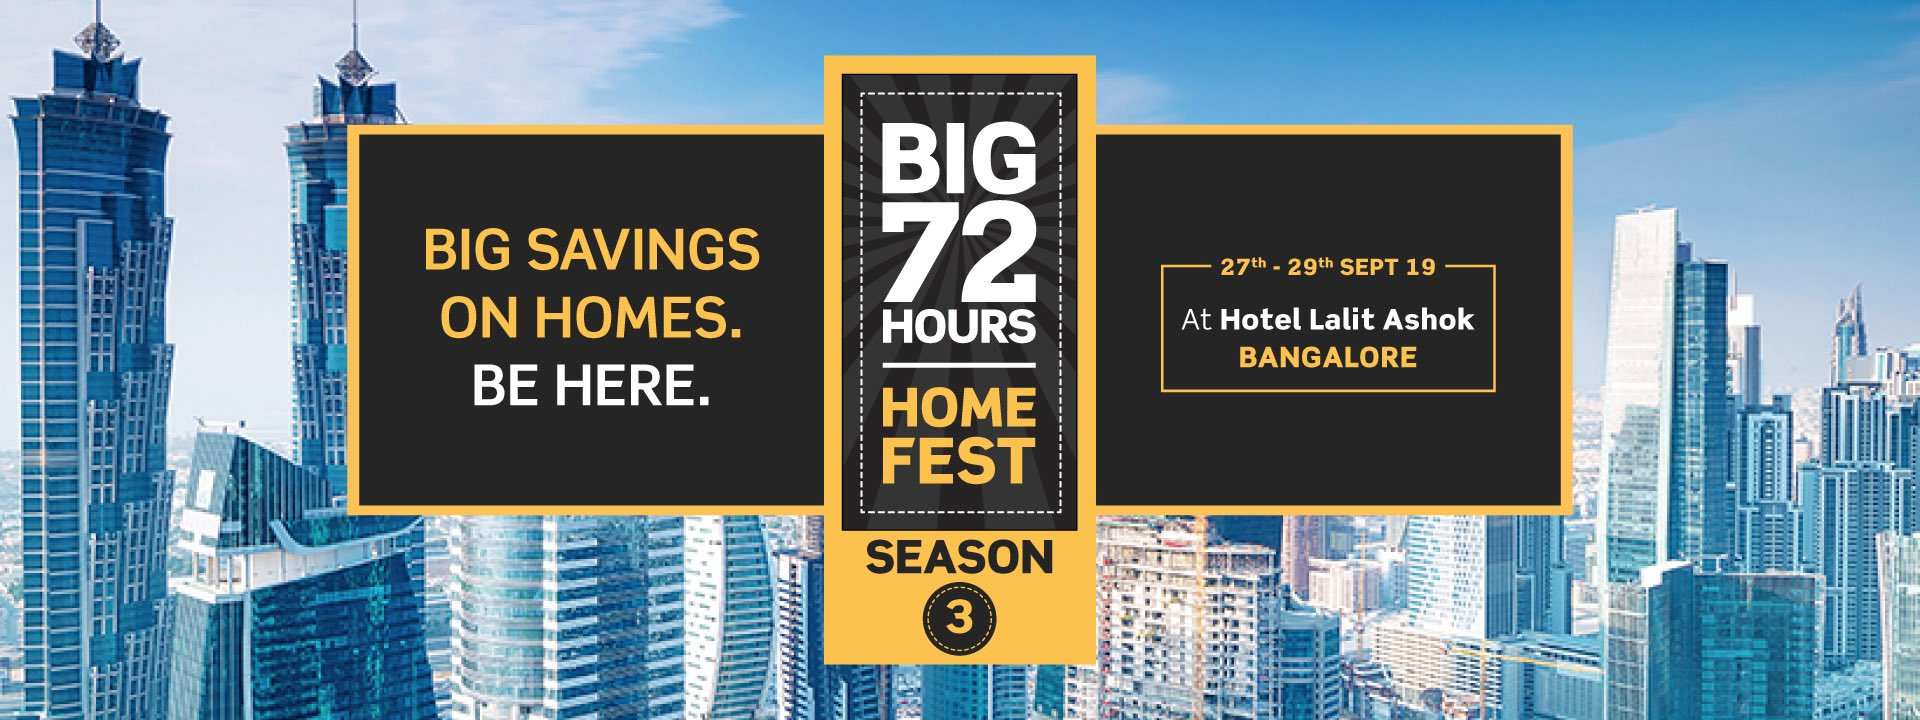 Puravankara Big 72 Hours Home Fest on 27 29 Sept 2019 in Bangalore Photo